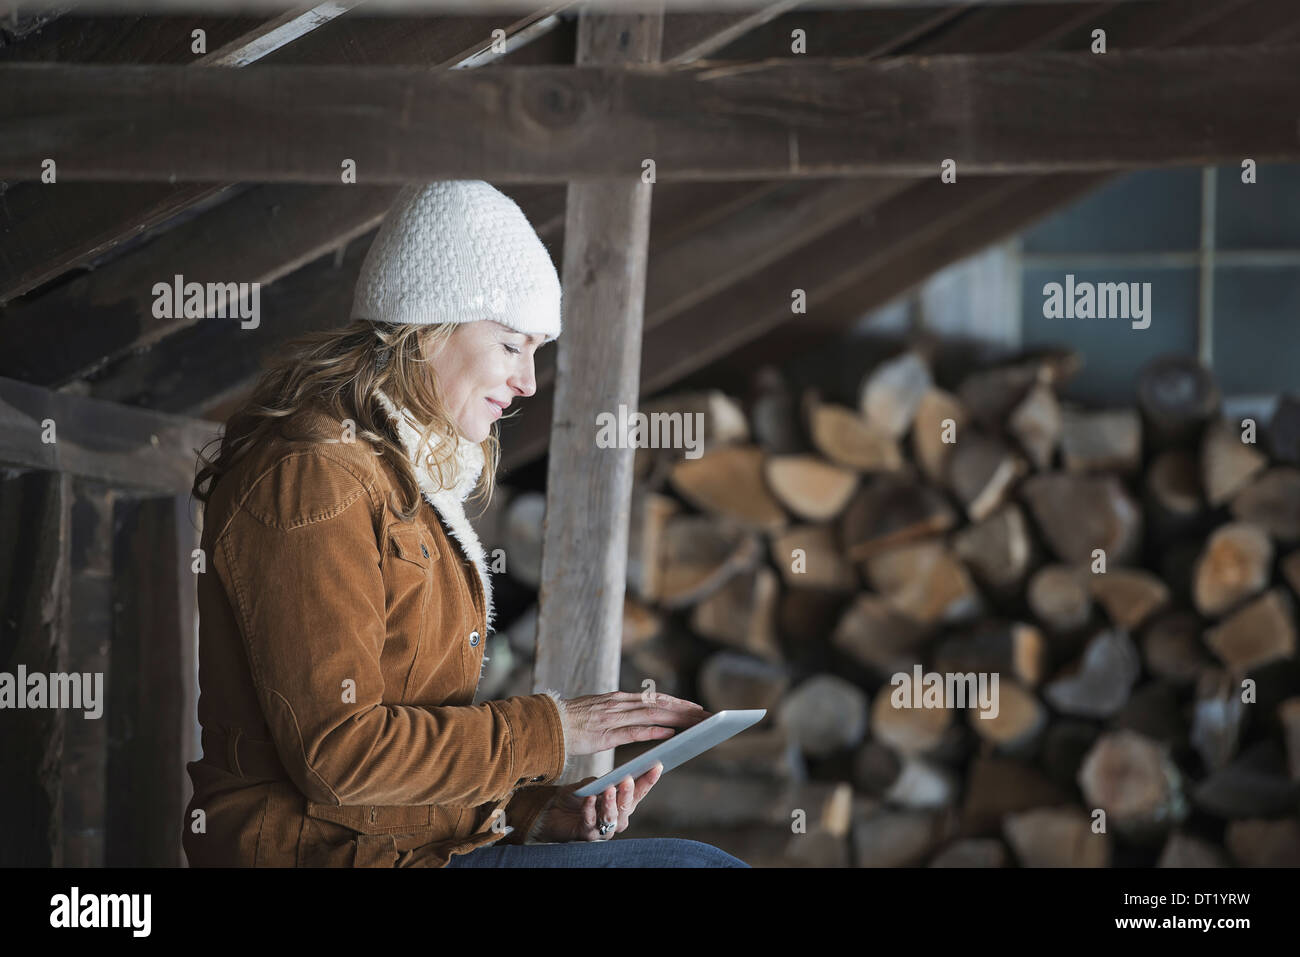 An organic farm in upstate New York in winter A woman sitting in an outbuilding using a digital tablet - Stock Image